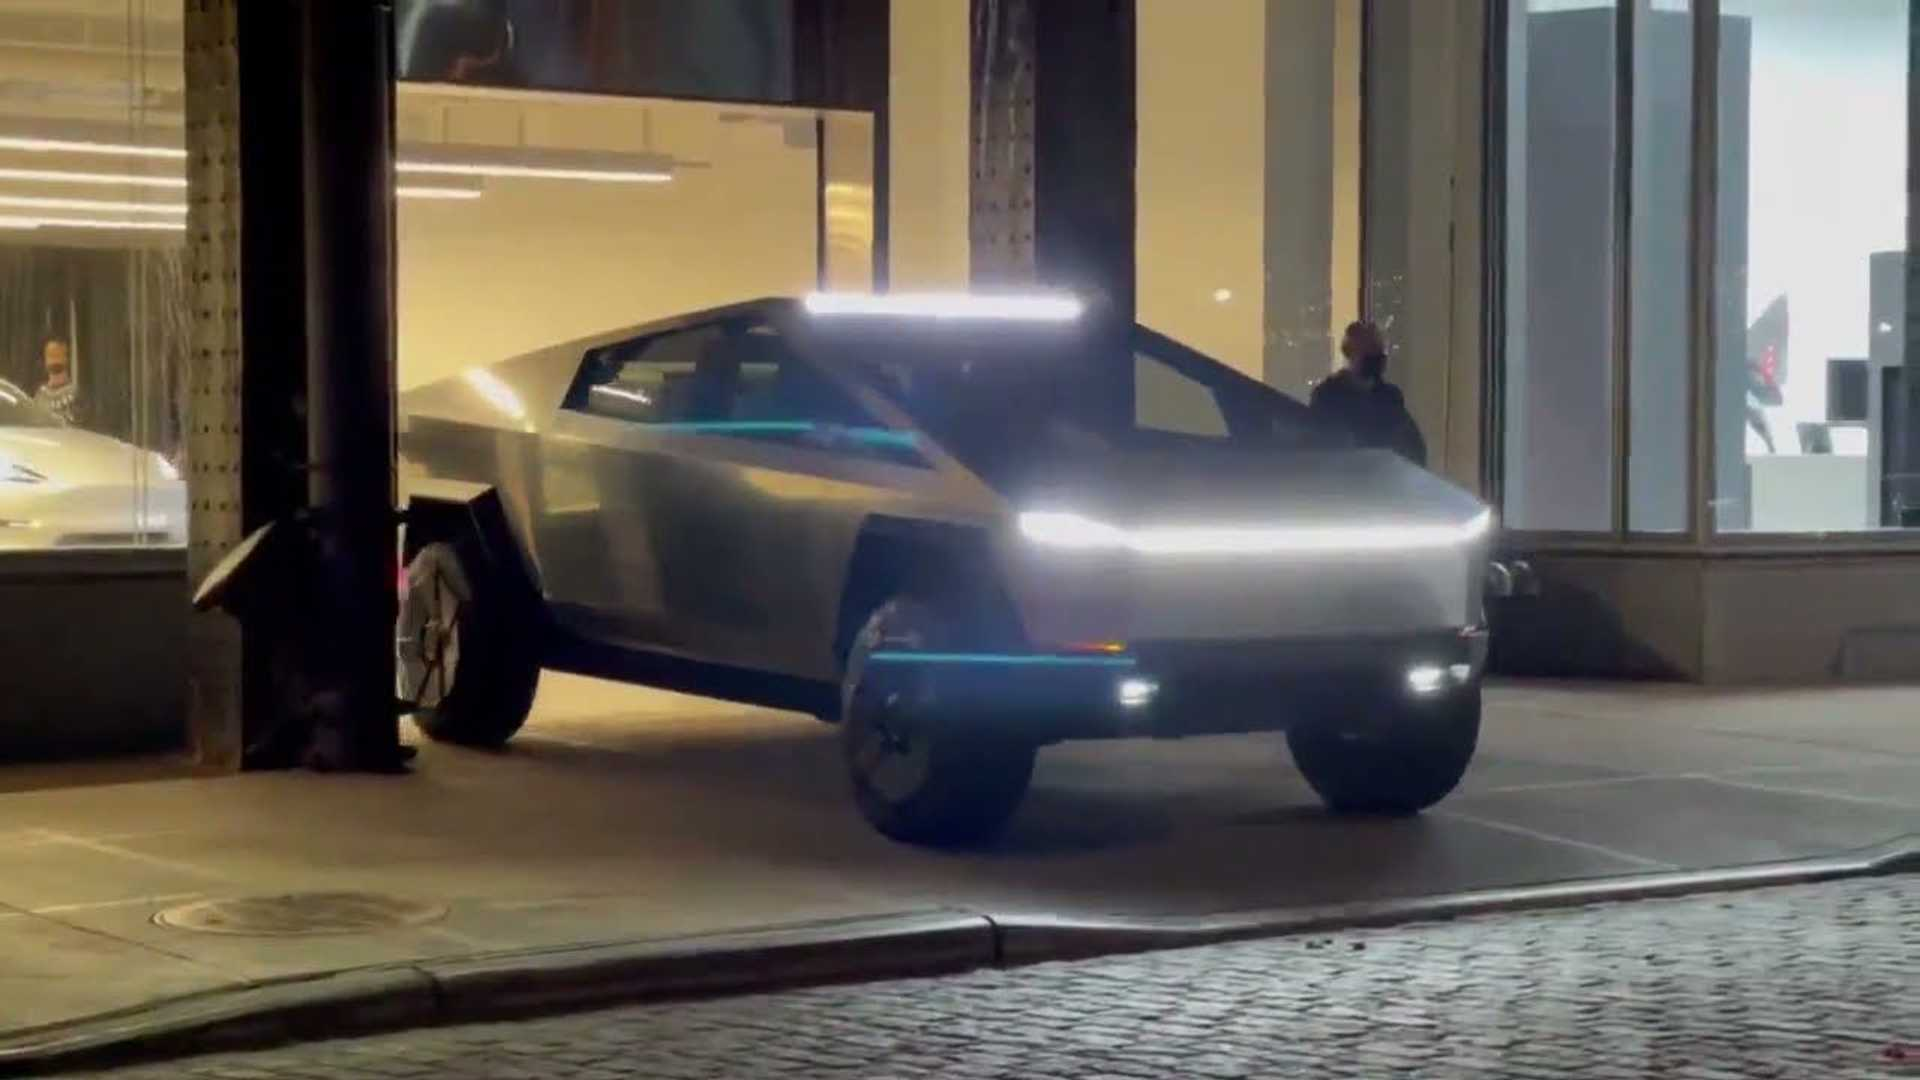 Billionaire Elon Musk's 'future' pickup truck attracts attention when it appears on 2nd Street